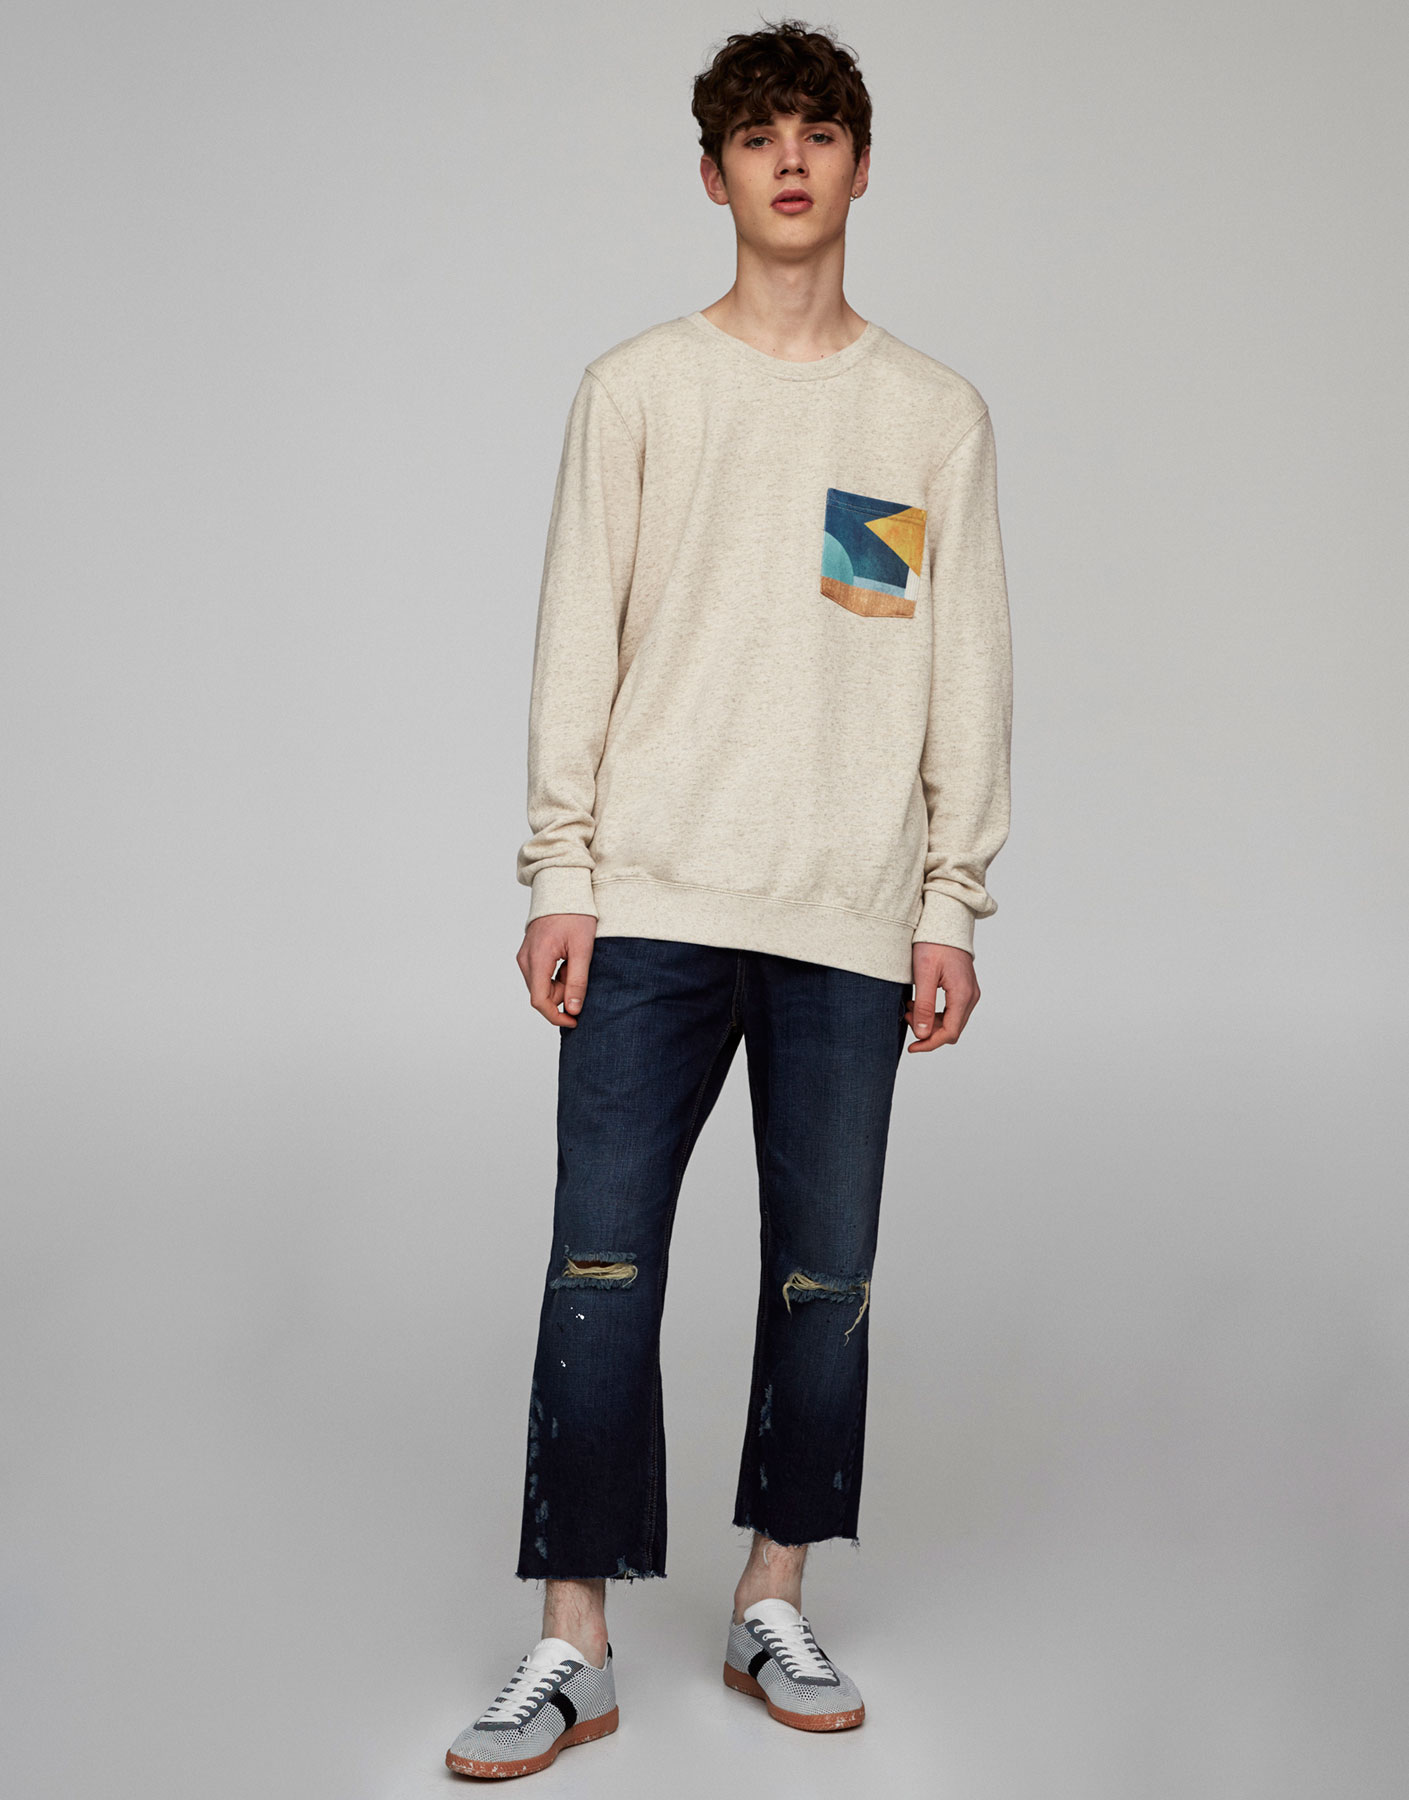 Sweatshirt with printed pocket